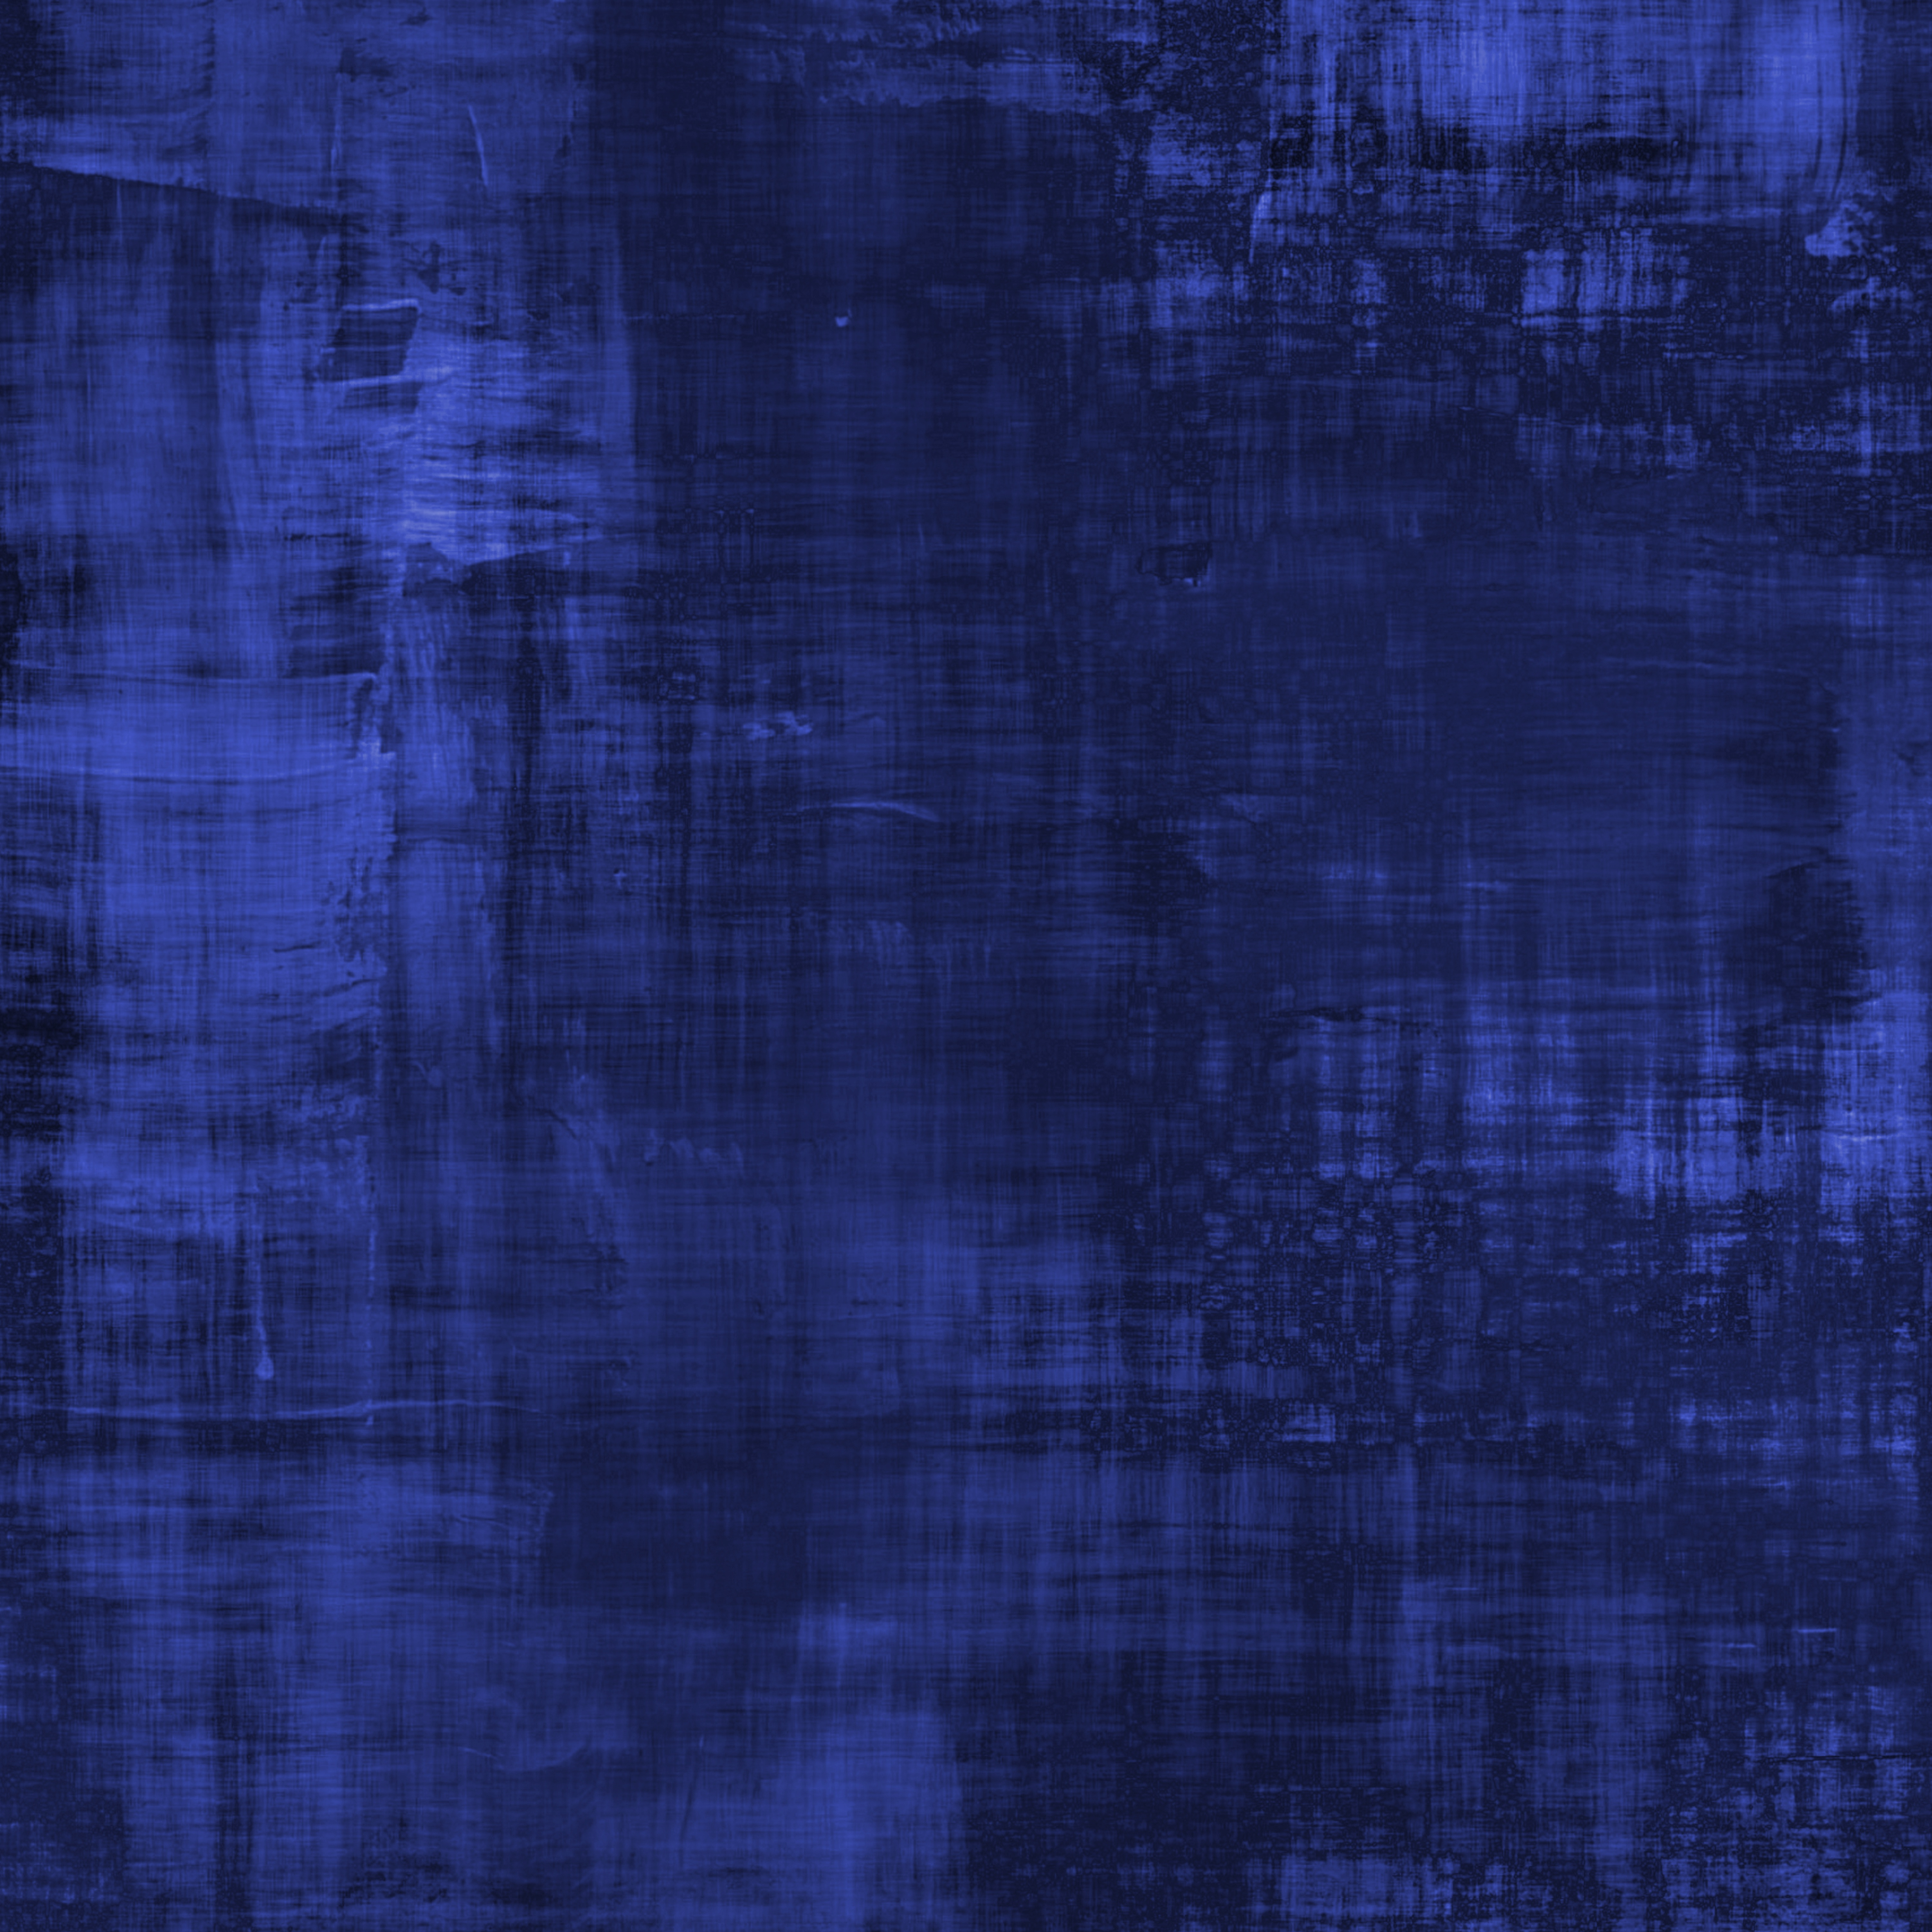 93882 download wallpaper Violet, Dark, Texture, Lines, Textures, Paint, Stains, Spots, Purple screensavers and pictures for free